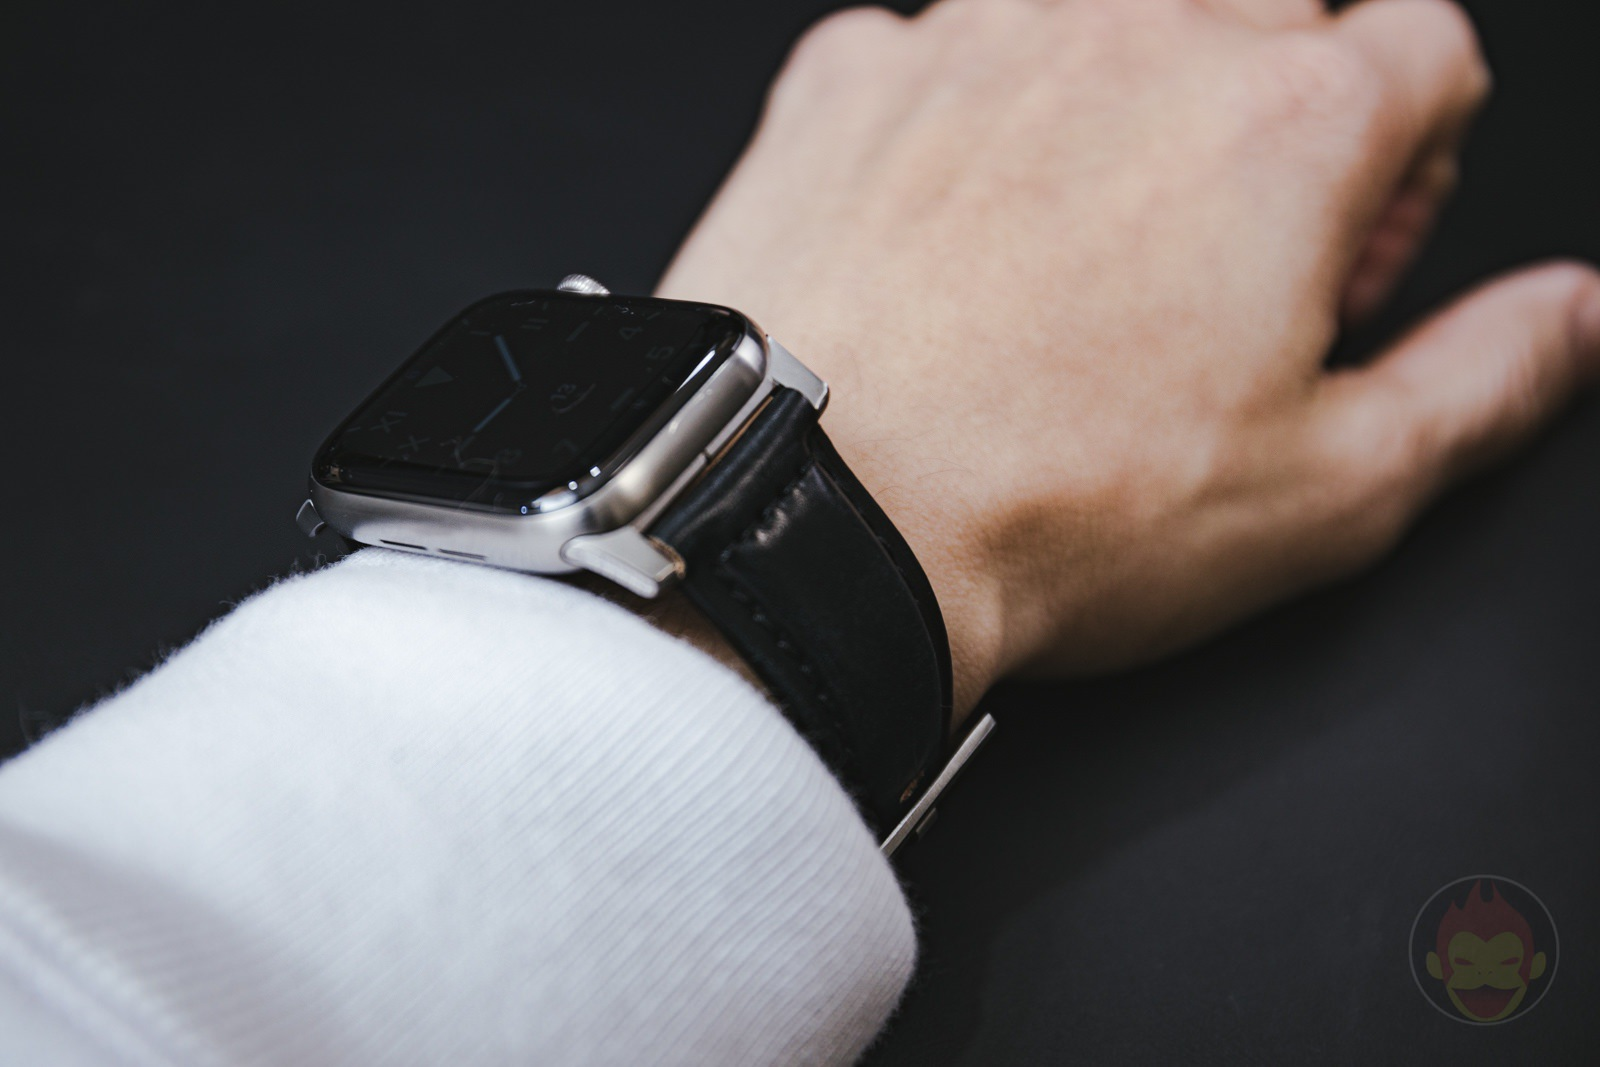 Apple-Watch-NOMAD-Shell-Cordovan-Strap-Review-09.jpg